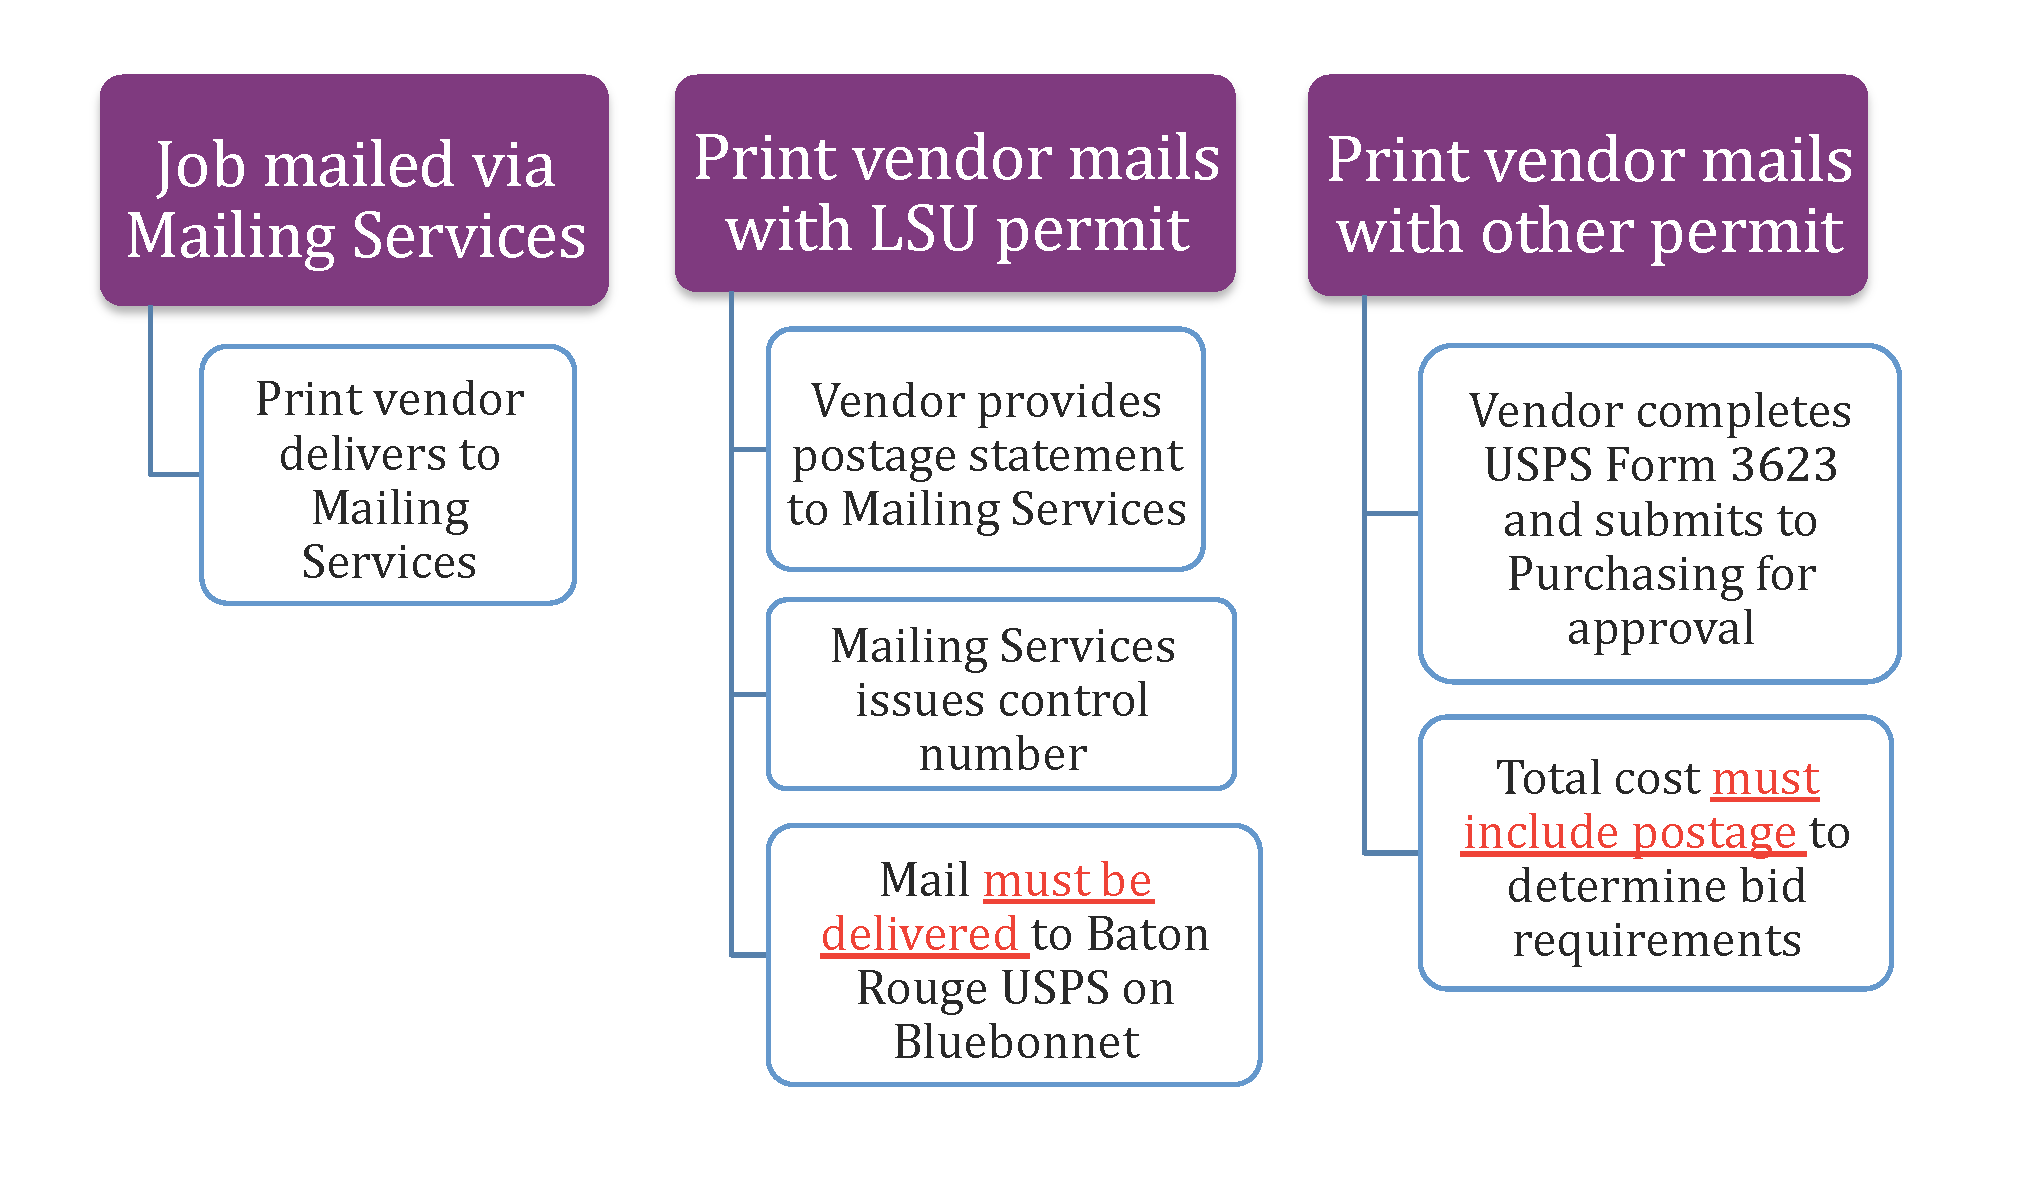 Cur Printing Quotation Request Tips Grok Knowledge Base You Should Note That In This Picture The Wire Quotcolorsquot Are Incorrect Flow Chart For Mailing